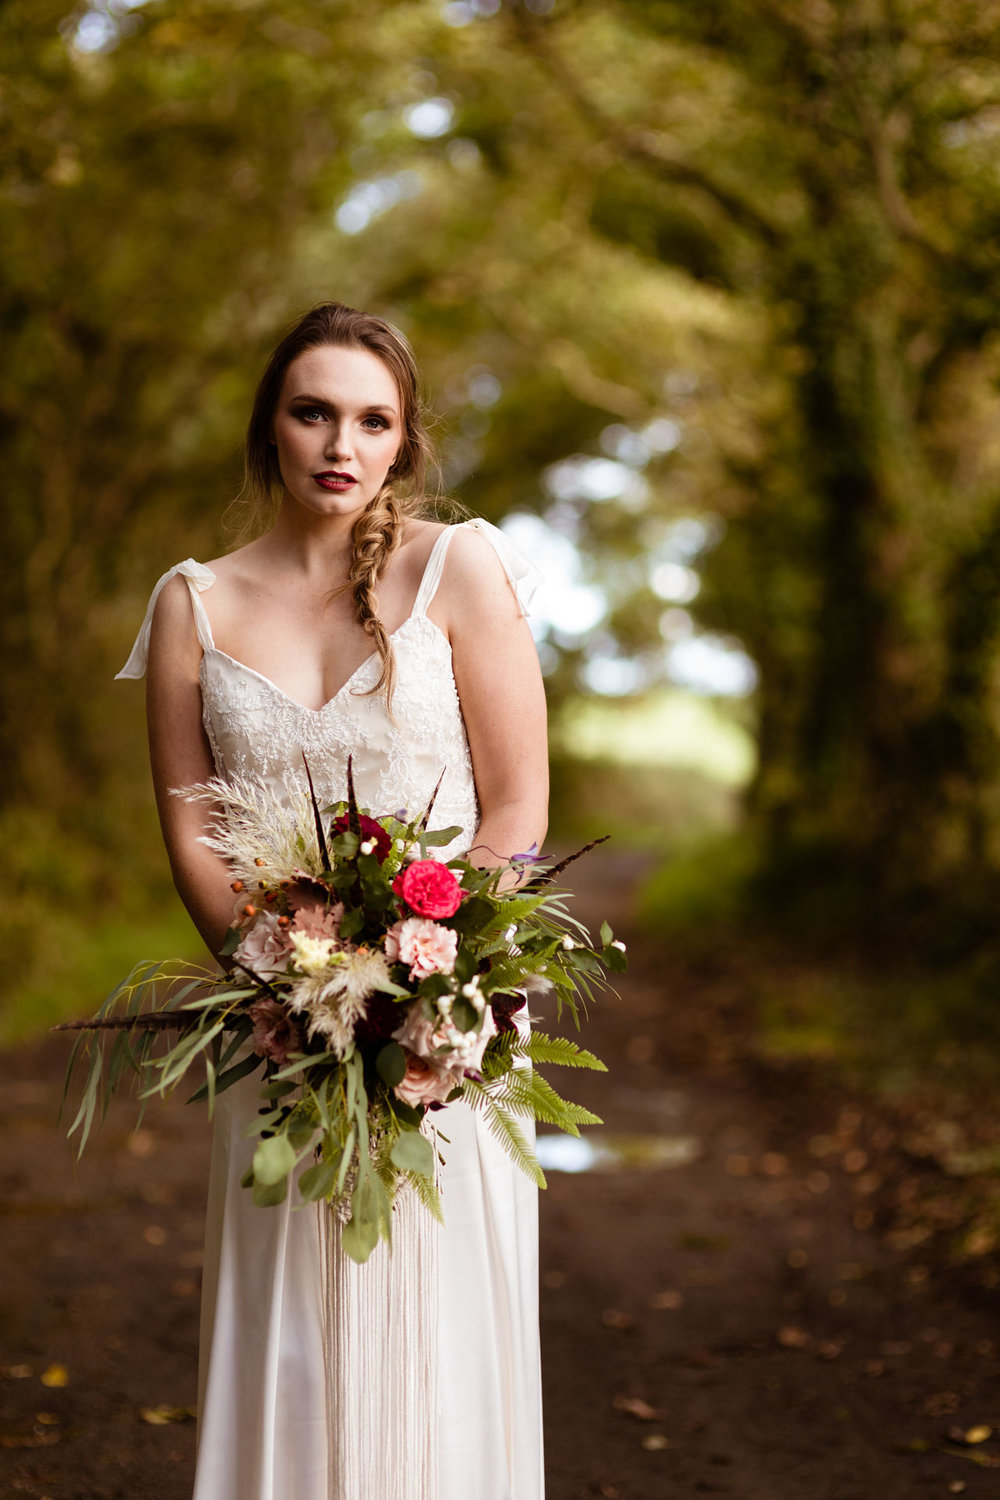 Photography: Jewell   Hair: Hair Design by Bethany   Make Up: Glampervan   Model: Heather Allen   Flowers: Heidi at The Flower Studio   Dress: Bridal House